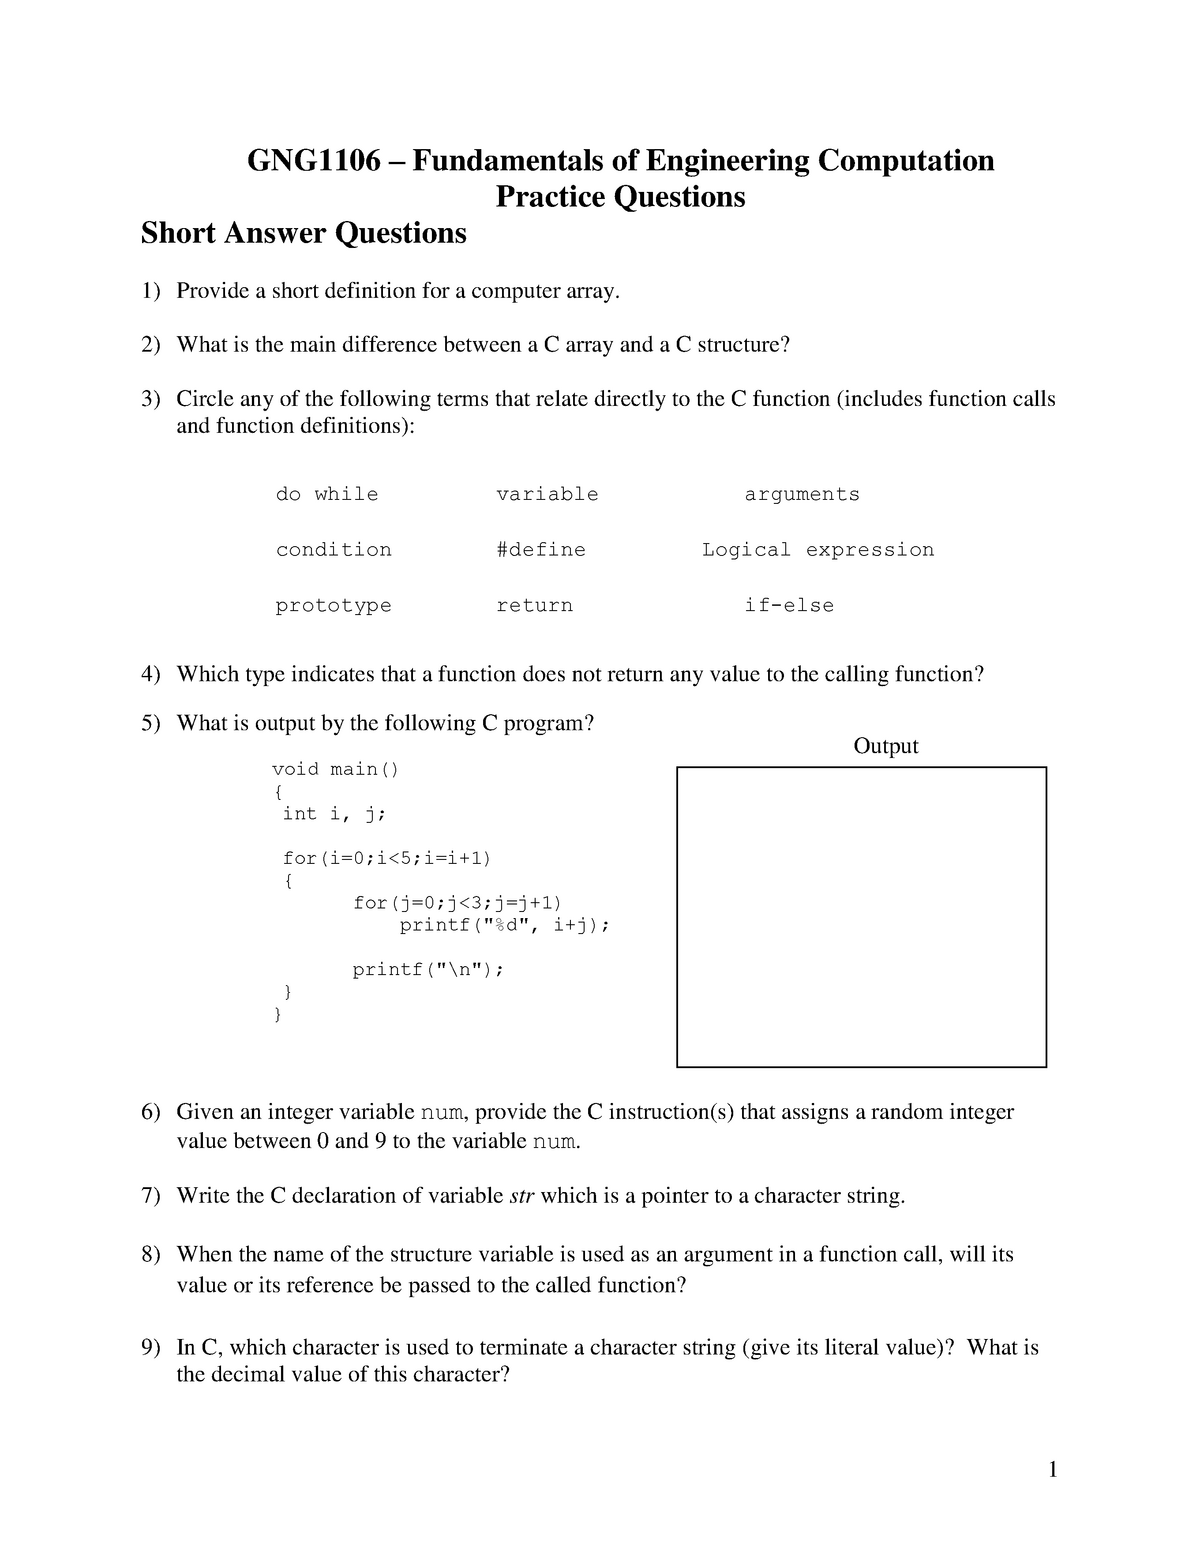 GNG1106Practice Questions - gng1106: Engineering Computation